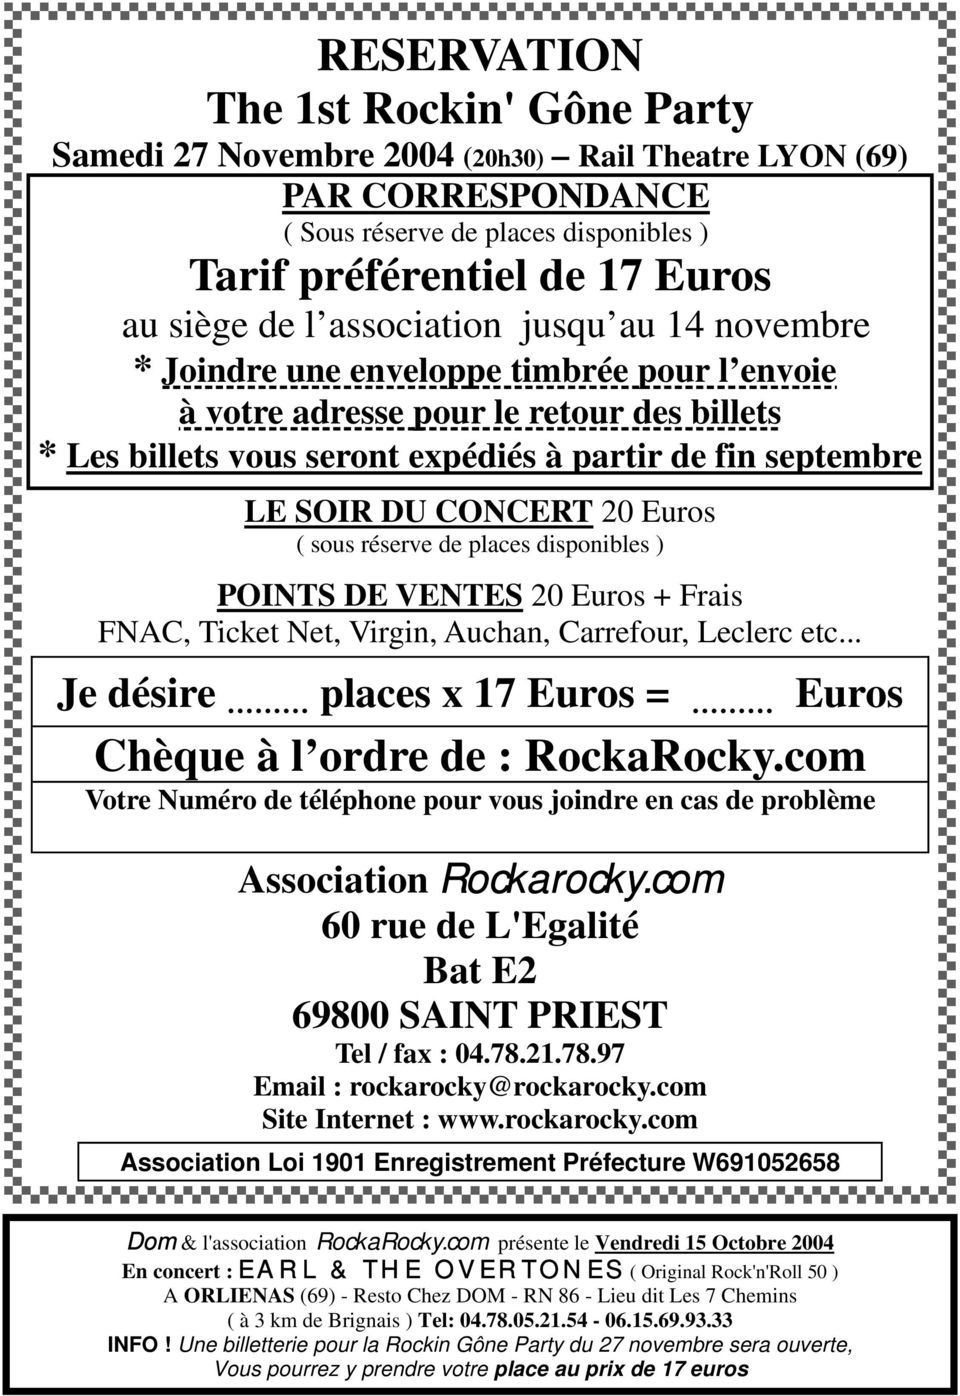 CONCERT 20 Euros ( sous réserve de places disponibles ) POINTS DE VENTES 20 Euros + Frais FNAC, Ticket Net, Virgin, Auchan, Carrefour, Leclerc etc.